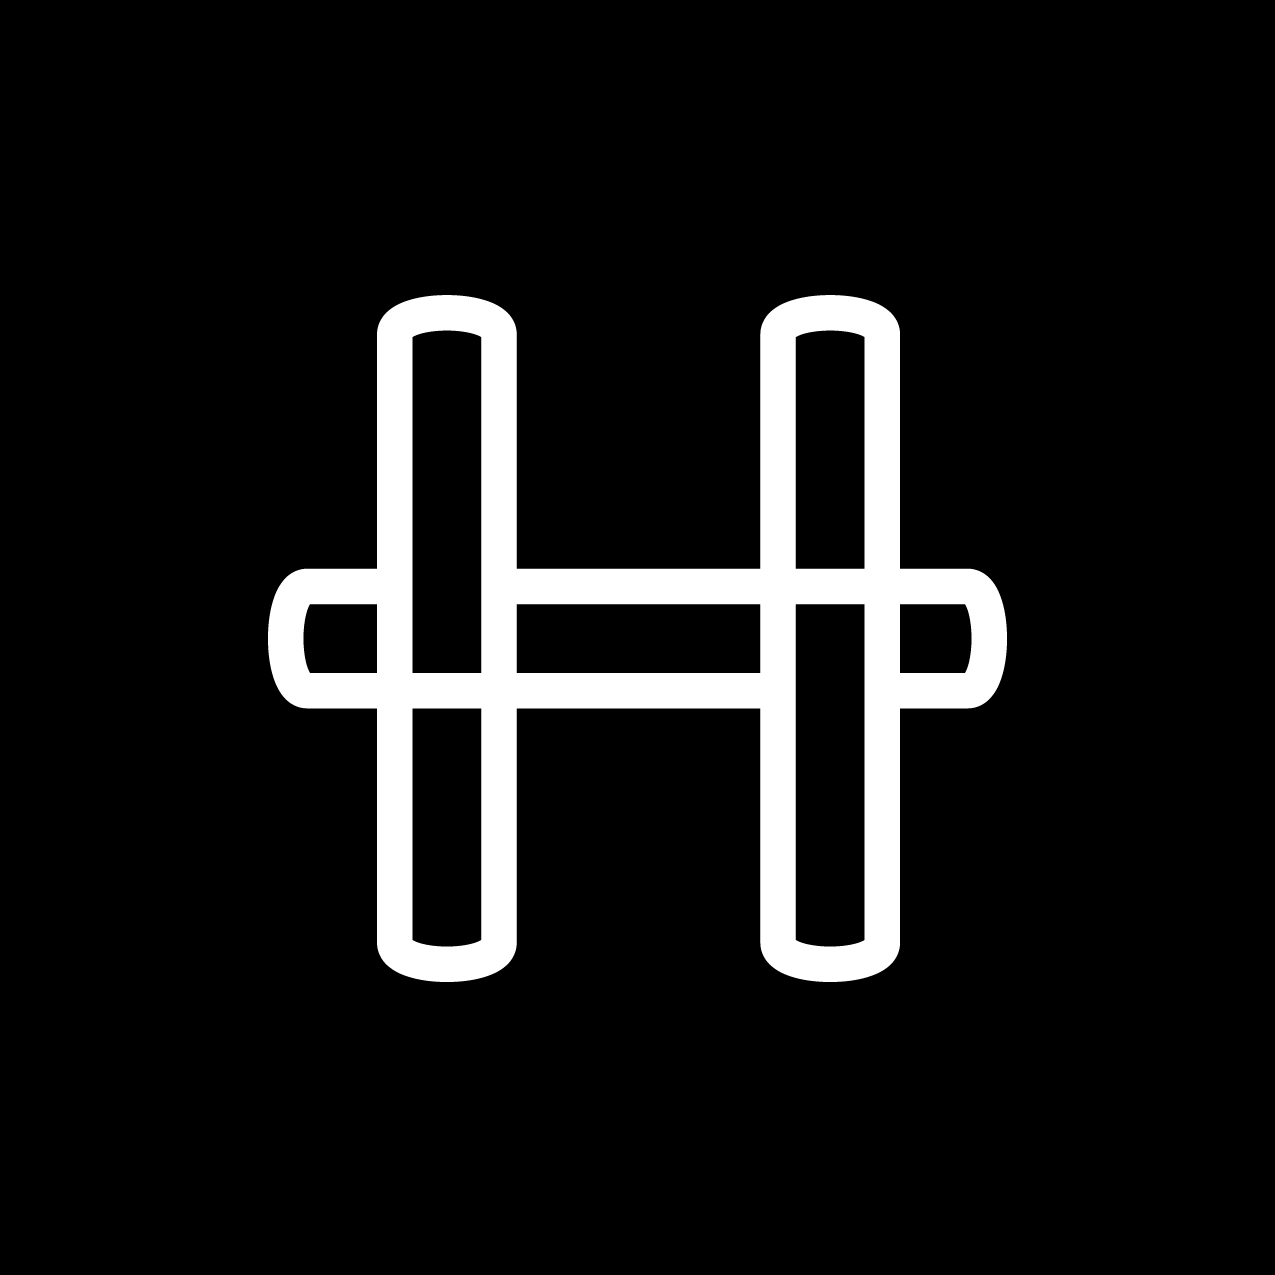 Letter H9 Design by Furia